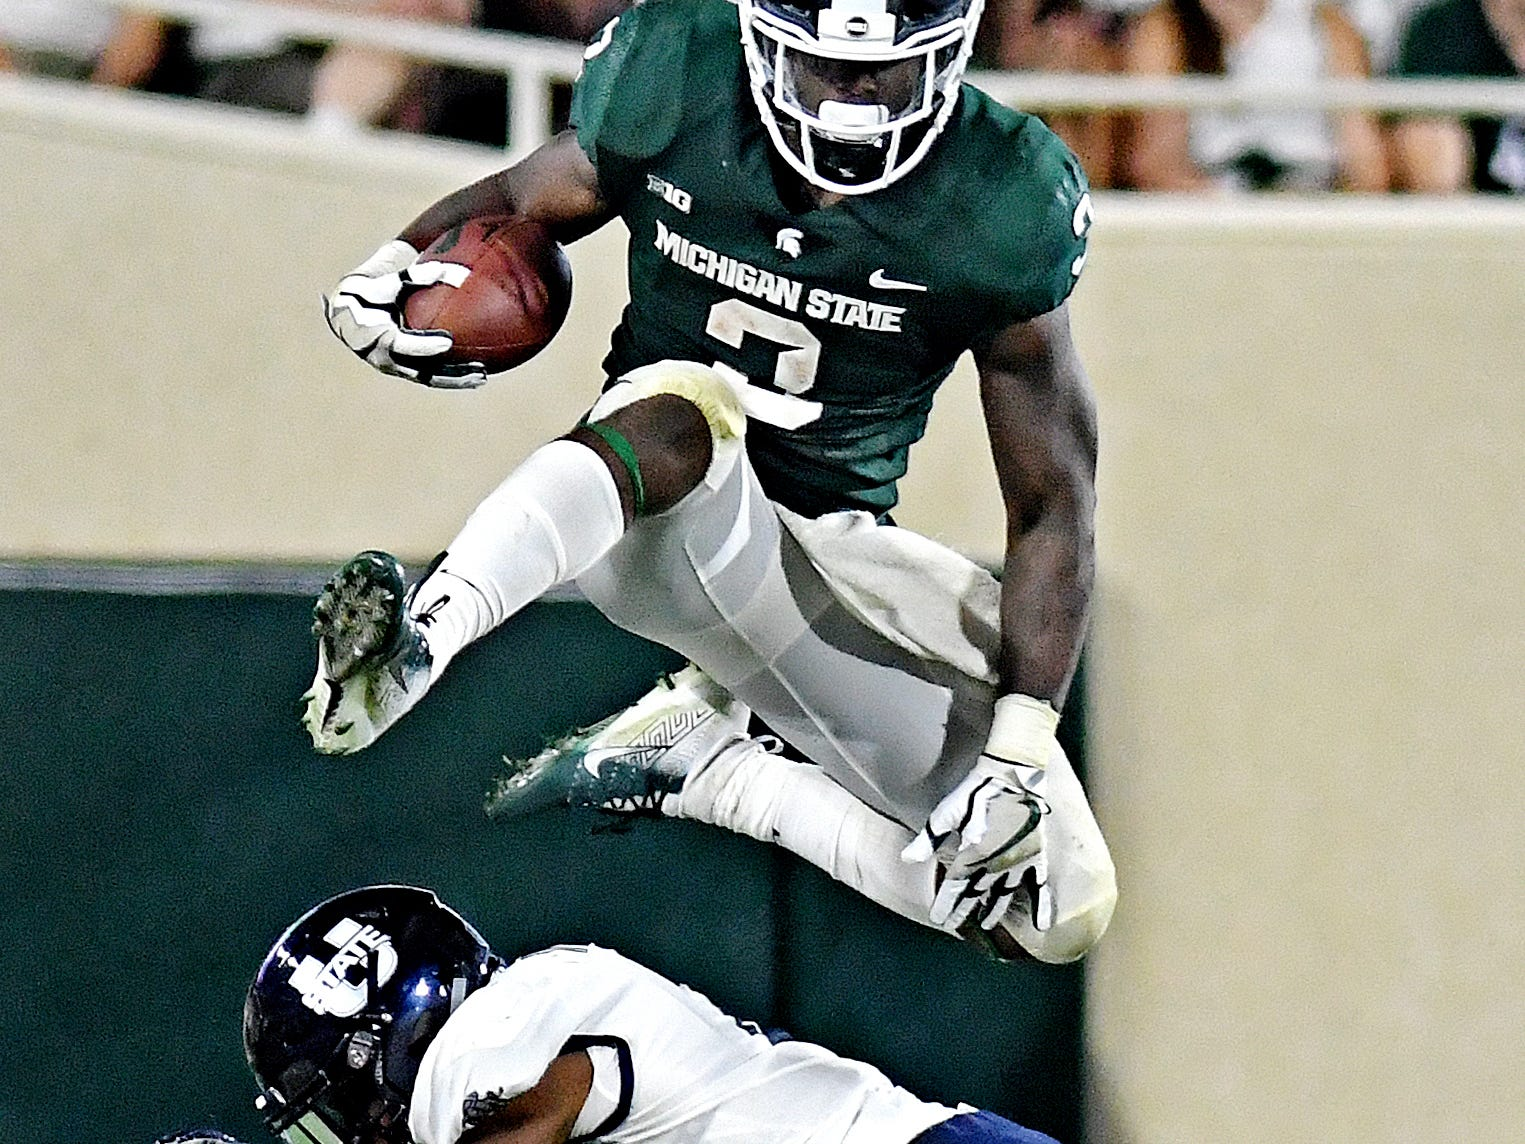 Michigan State's LJ Scott leaps over Utah State's Ja'Marcus Ingram on a run during the fourth quarter on Friday, Aug. 31, 2018, at Spartan Stadium in East Lansing.